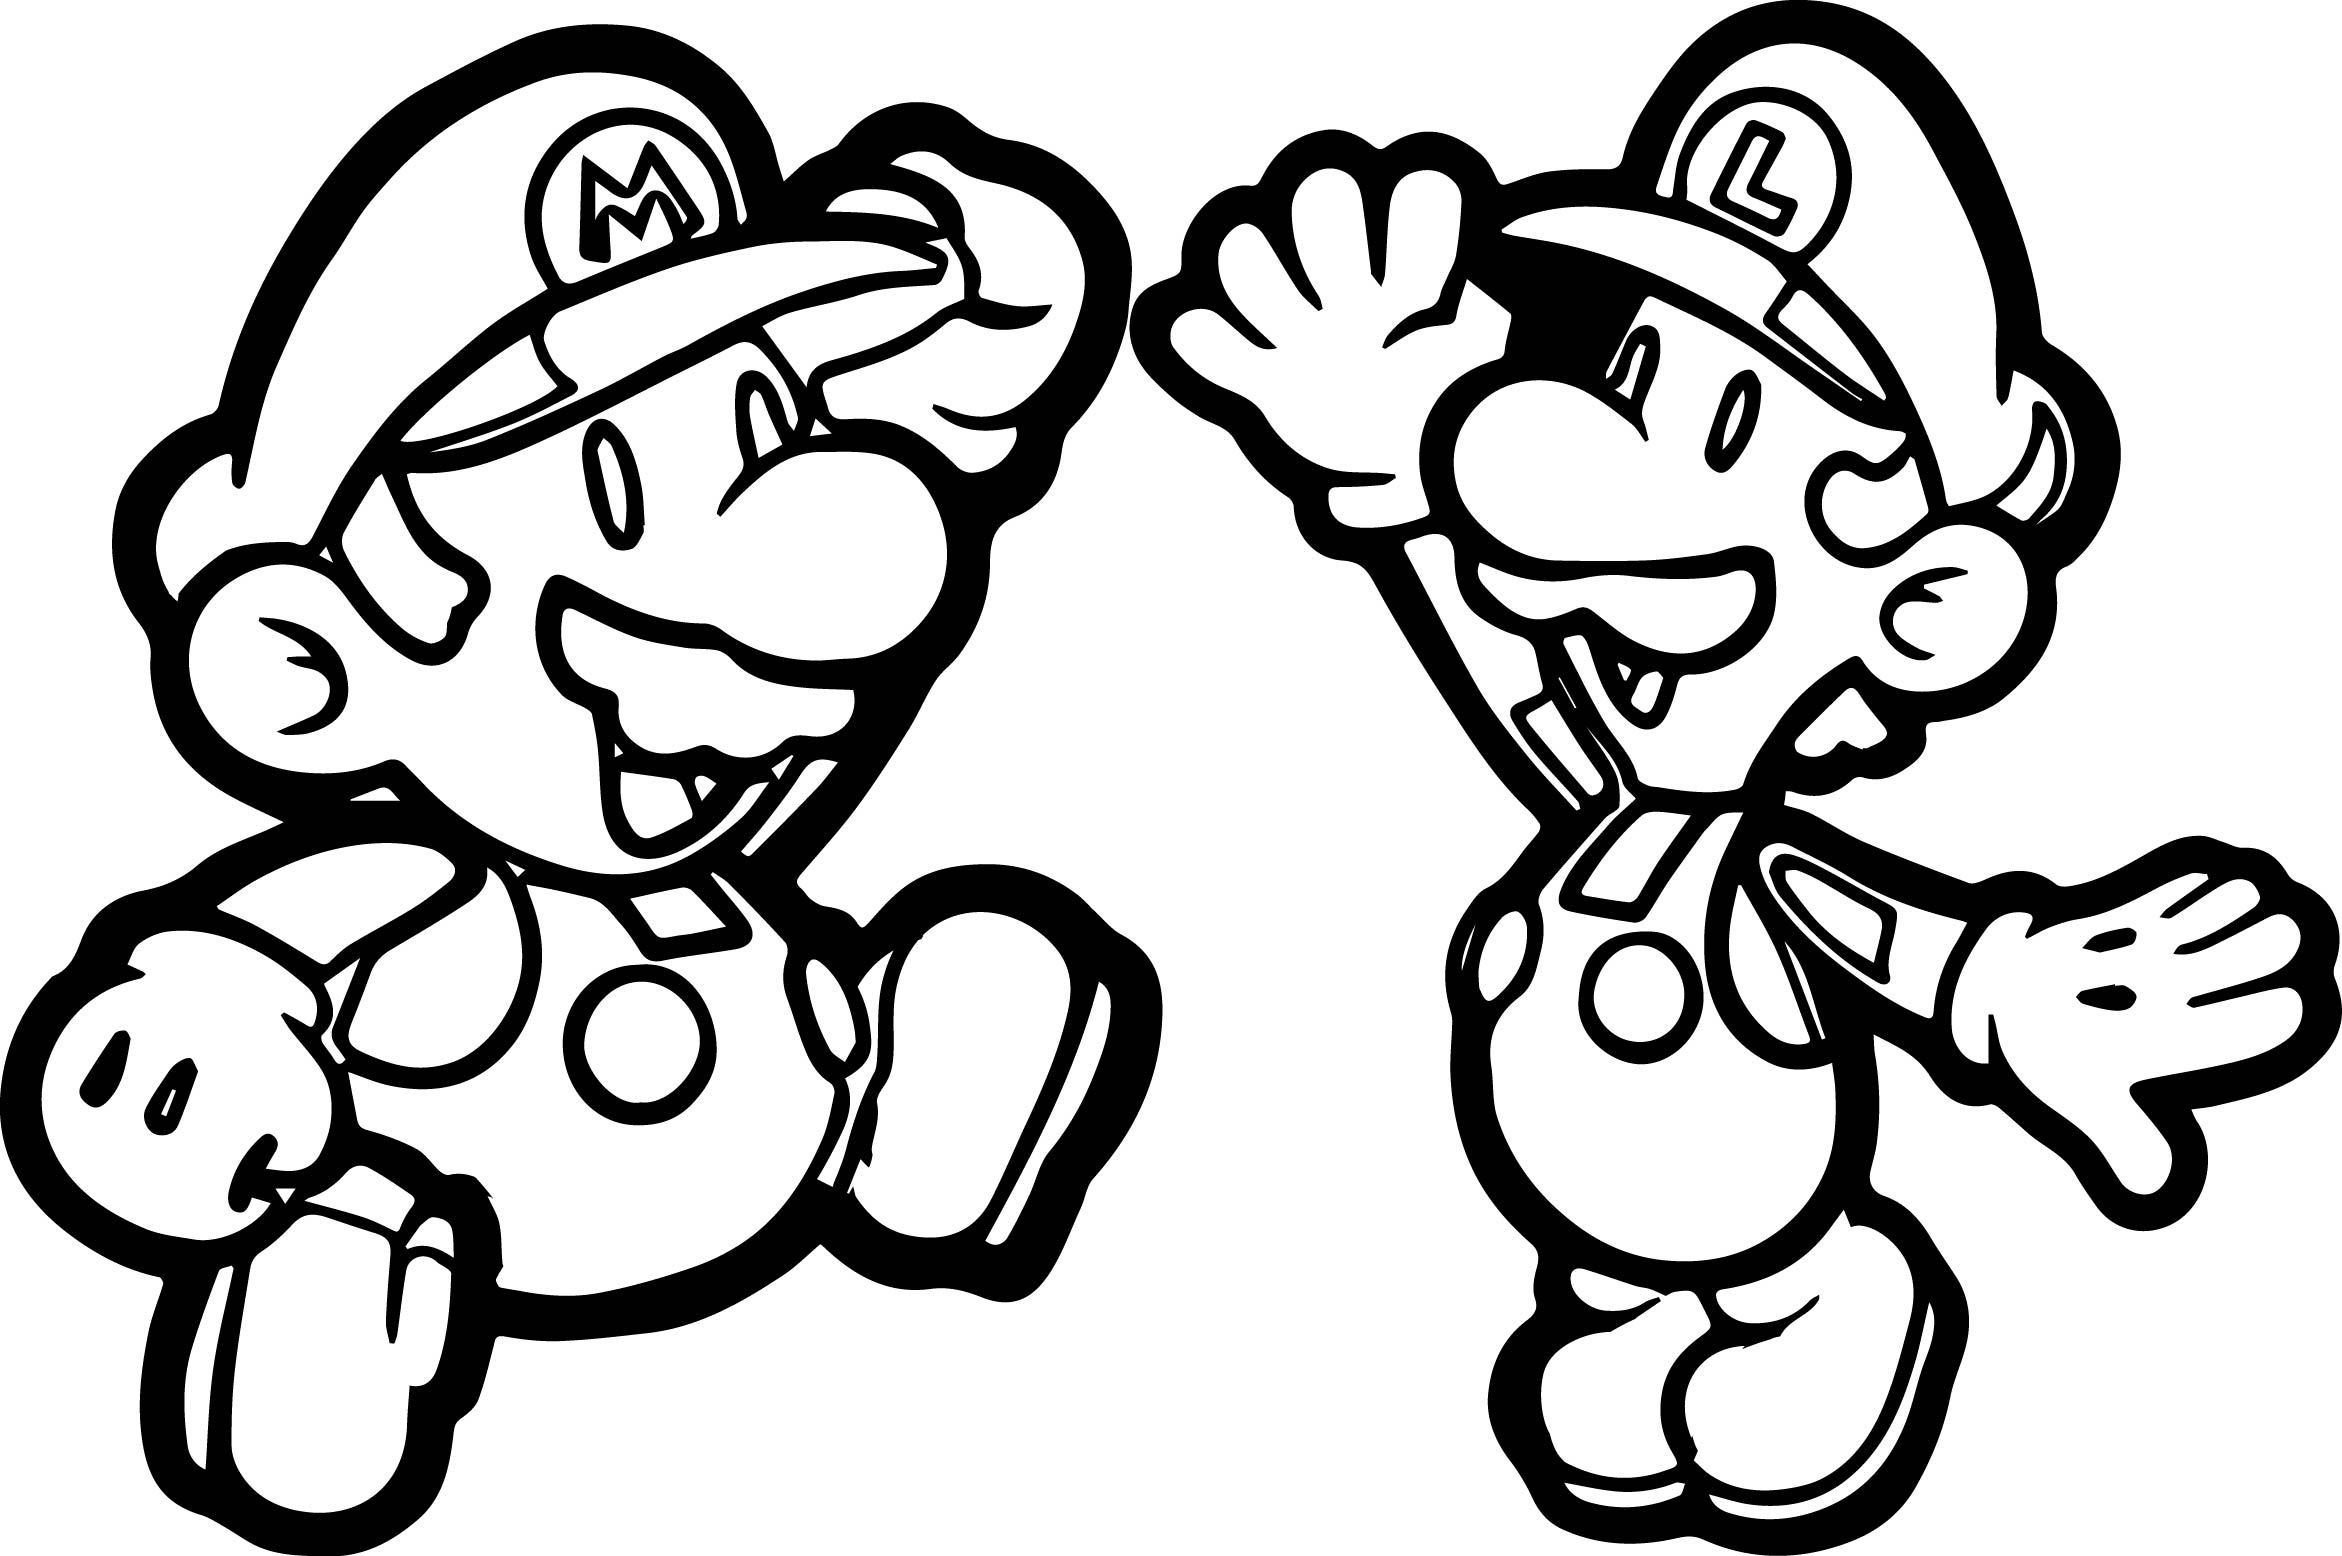 mario and sonic coloring pages splendi mario and sonic coloring pages drive2vote pages sonic mario coloring and